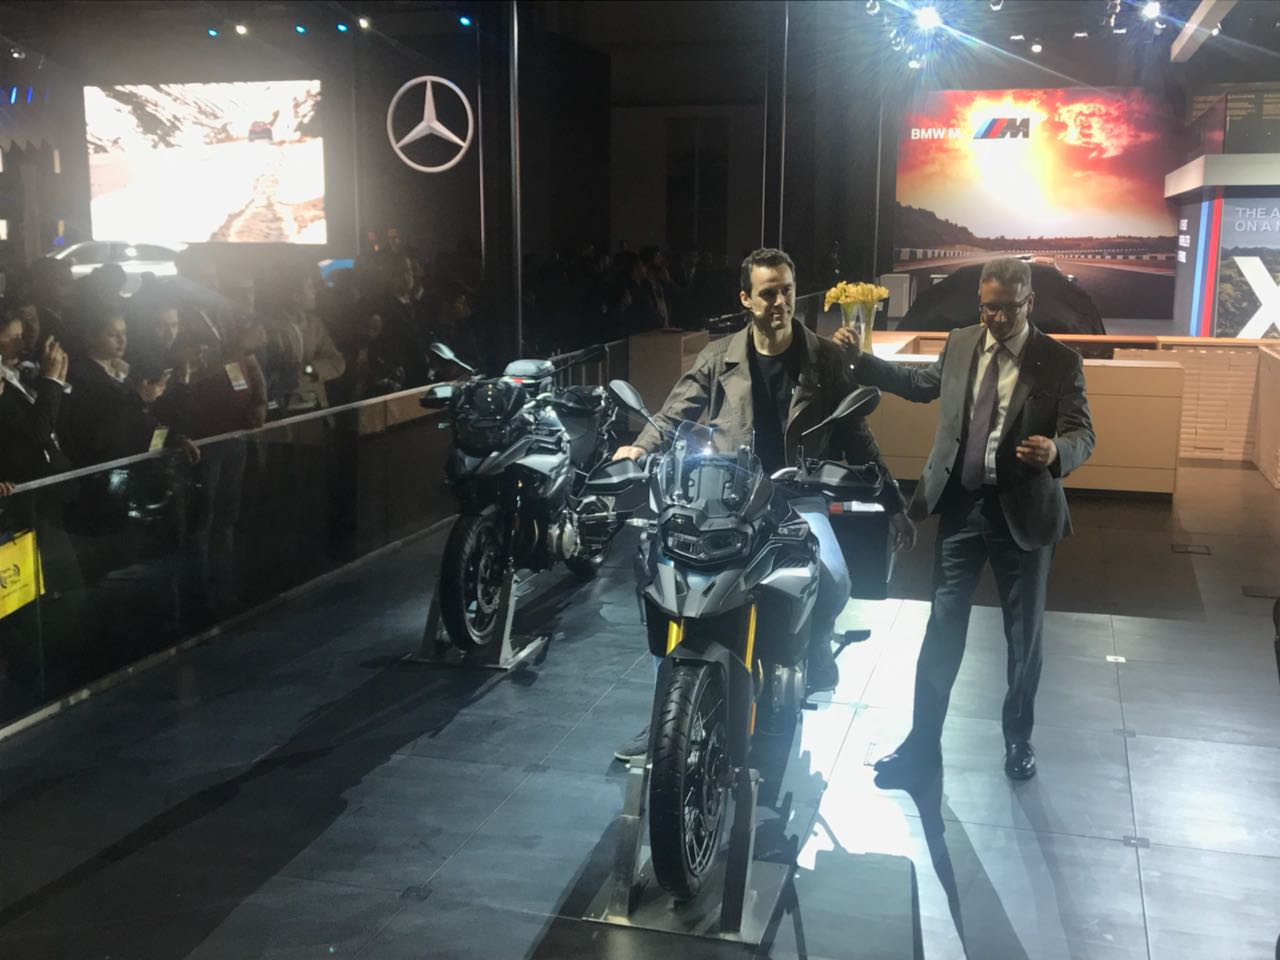 <p>BMW F750 and F850 GS showcased</p>